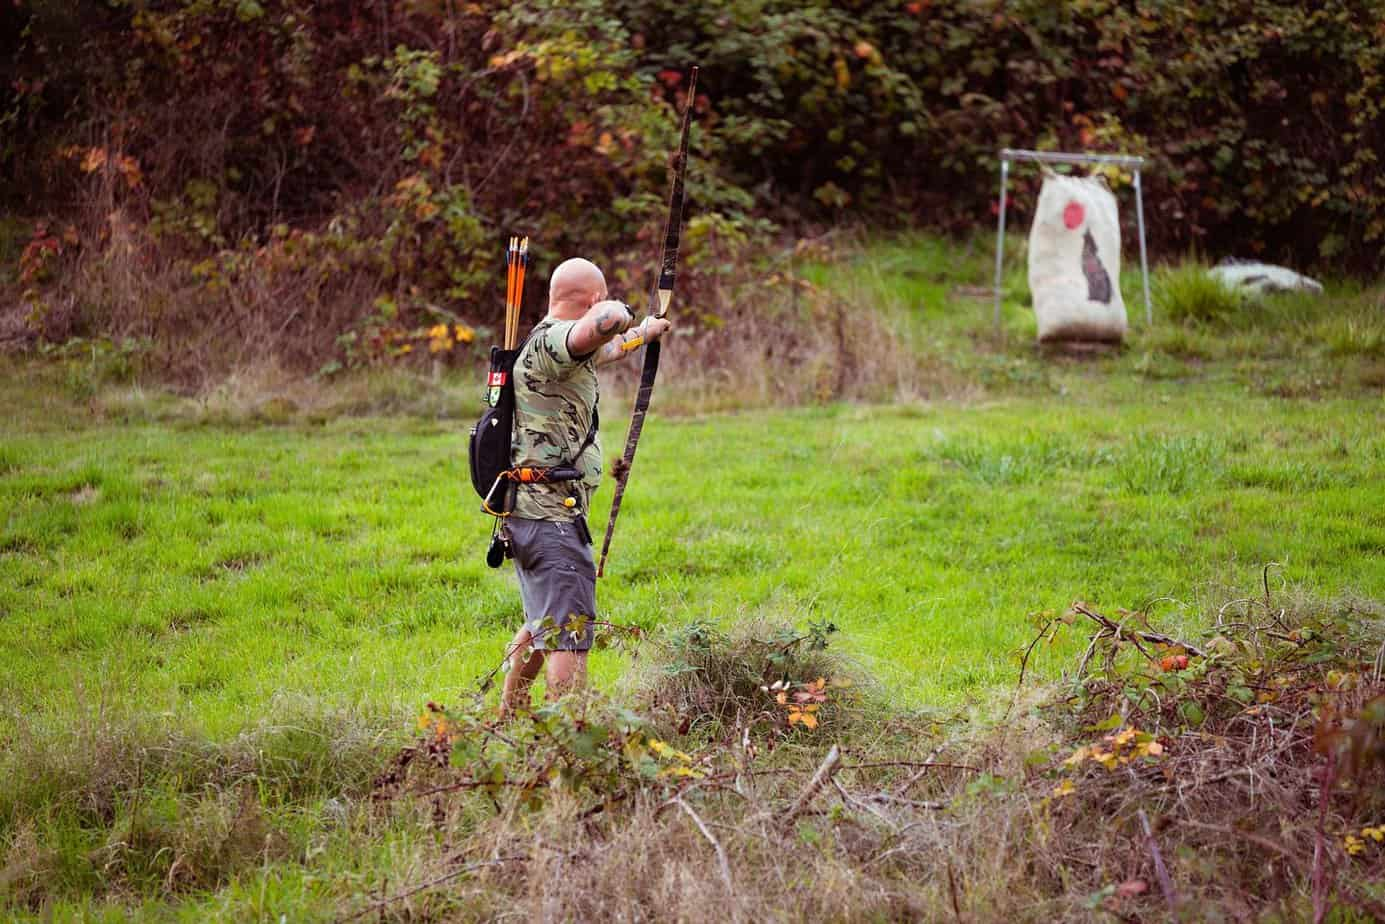 5 fundamentals to shooting a traditional bow